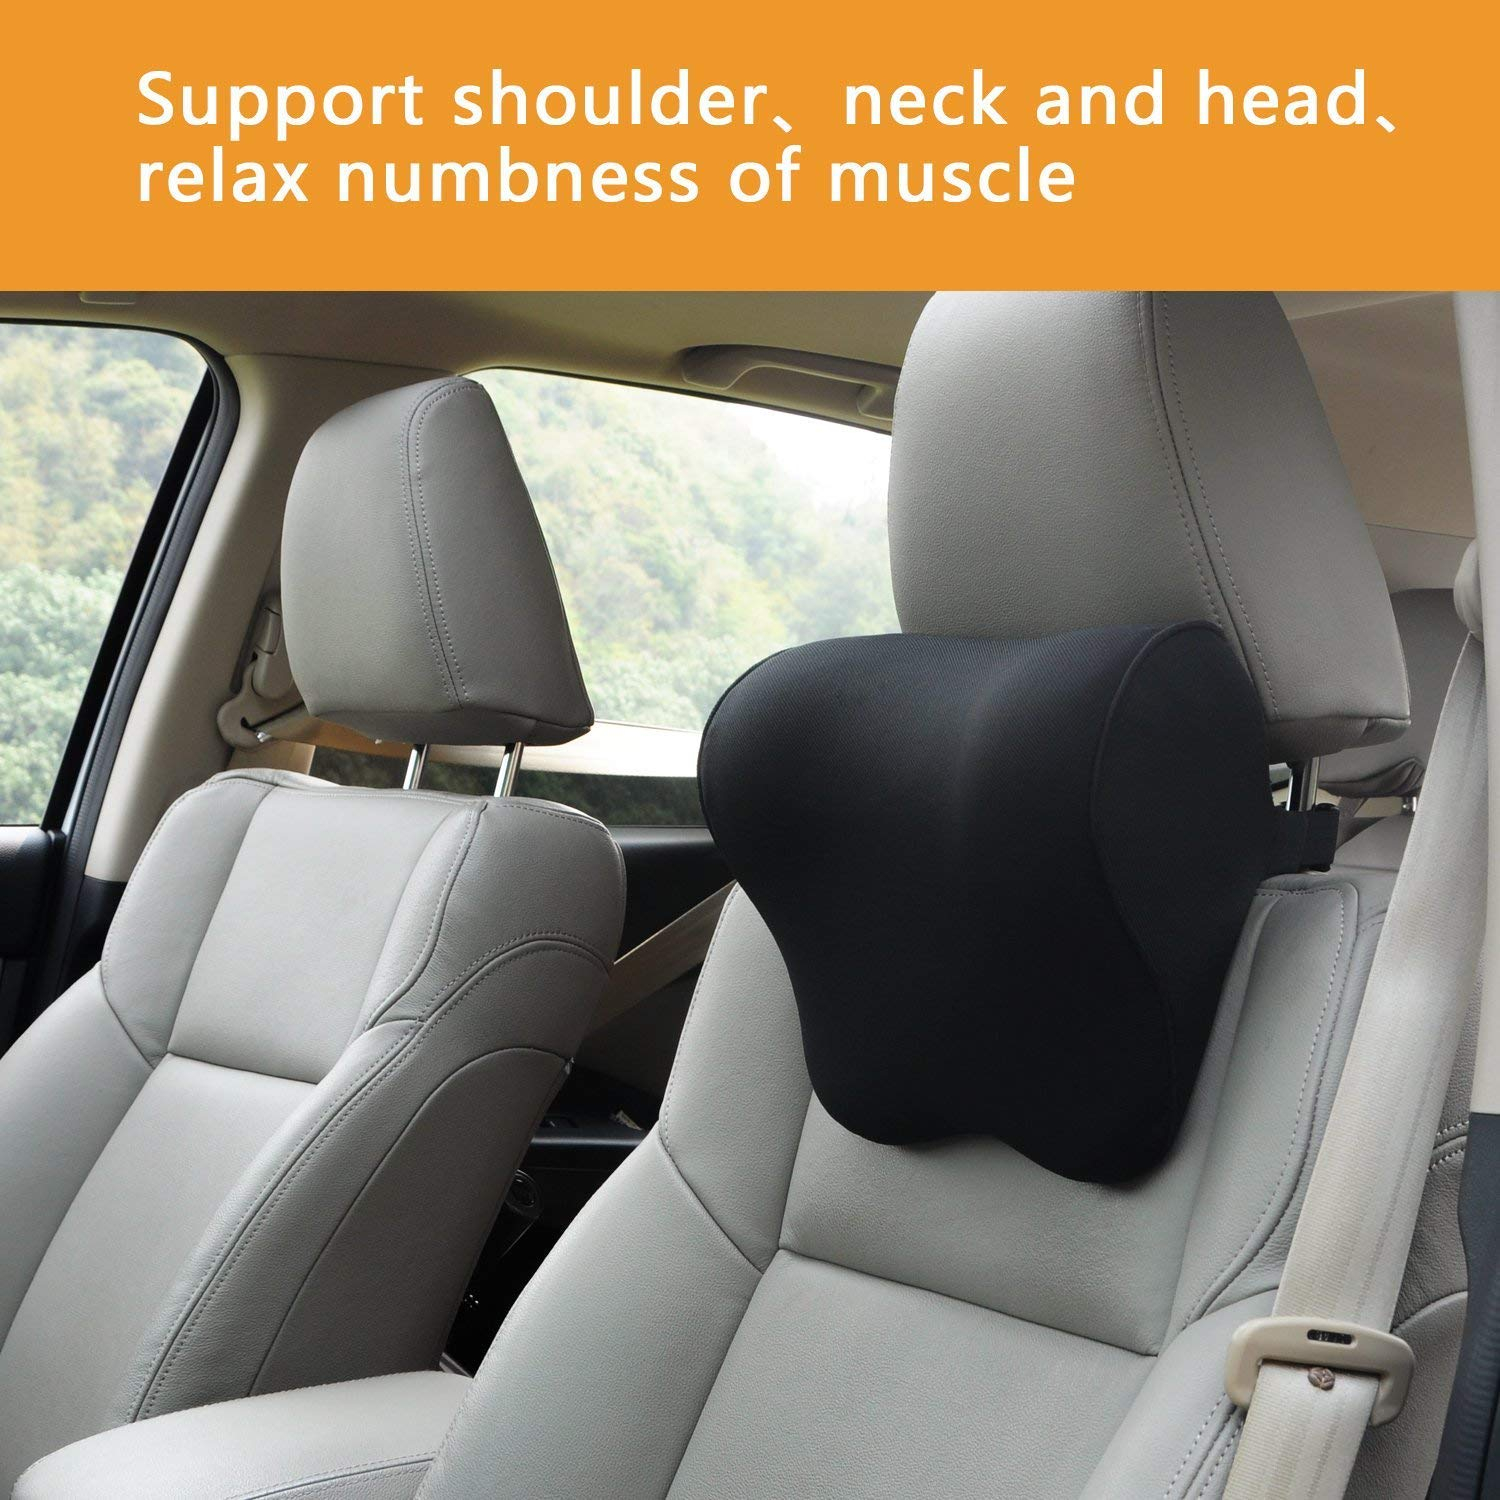 Dreamer Car Back Support in Car /& Headrest Pillow Kit Designed for Car Seat,High Density Memory Foam Ergonomically Designed for Full Back and Head Support and Back Pain Relief,Gray